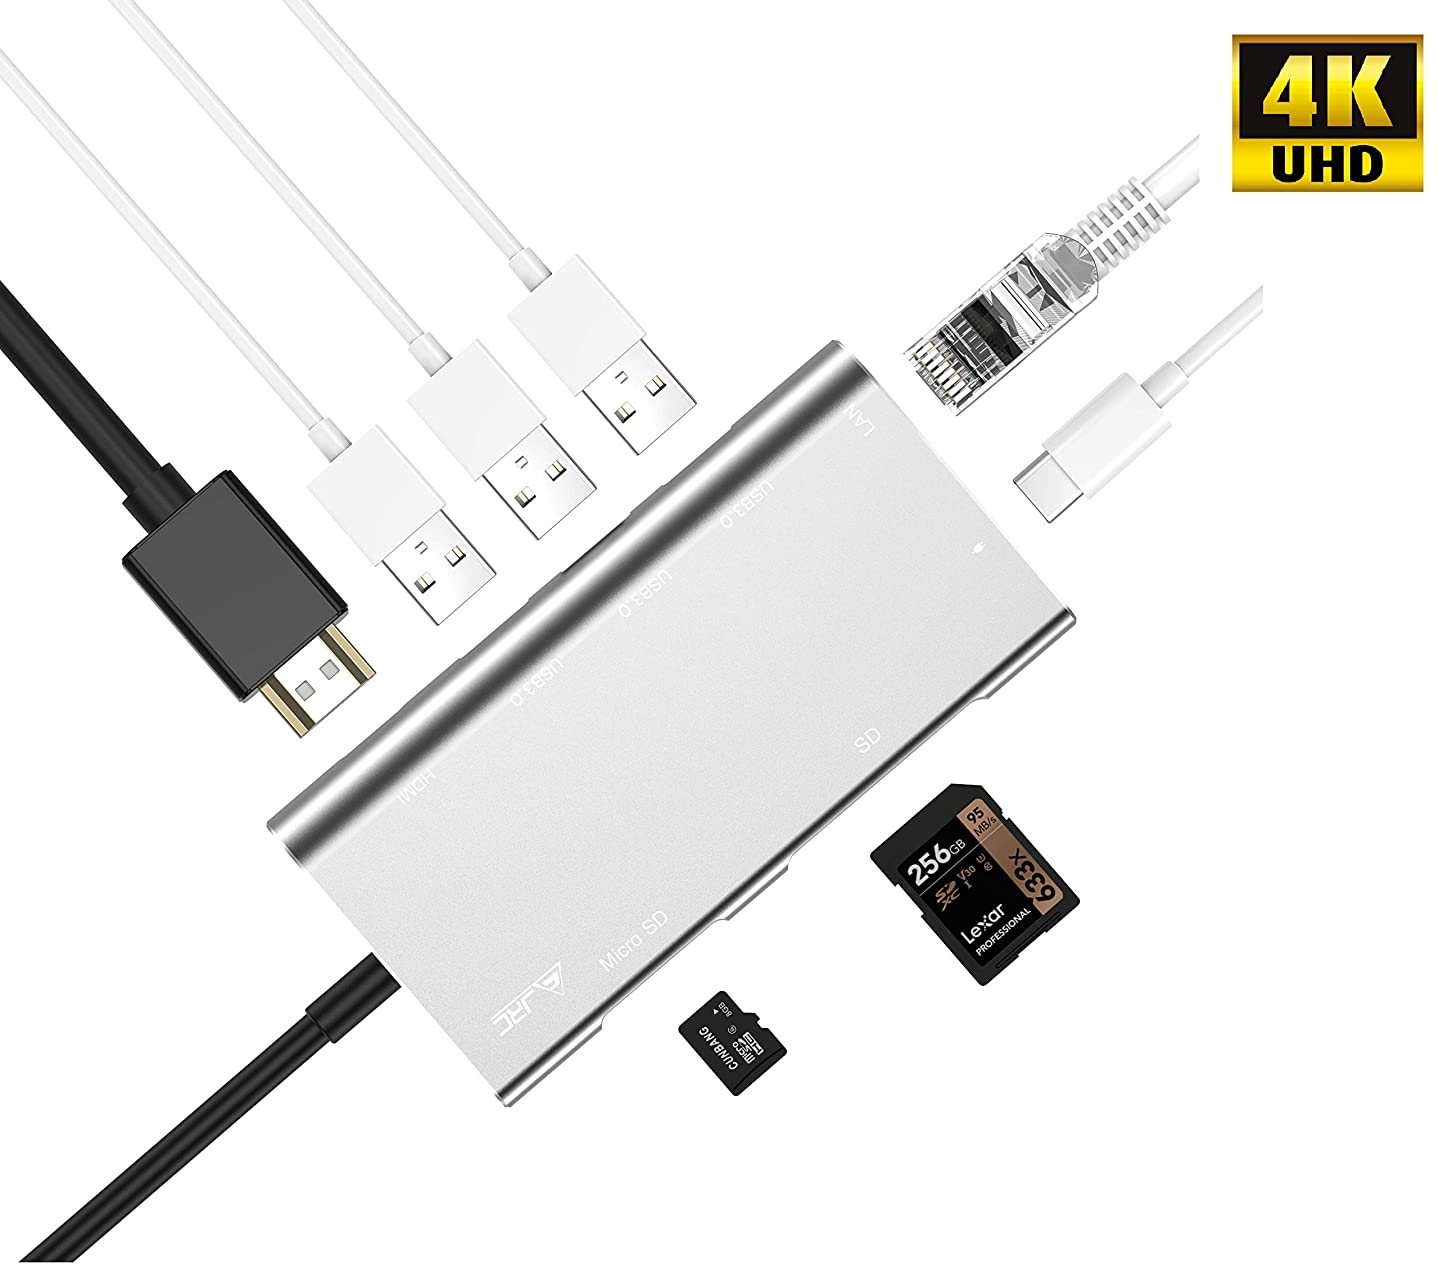 8 in 1 Thunderbolt 3 USB-C Hub Adapter with Type C,100W Power Delivery,1000M Ethernet Port,4K HDMI,3 USB 3.0 Ports and SD/TF Card Reader Compatible MacBook Air 2018,New MacBook Pro,ChromeBook,Surface,